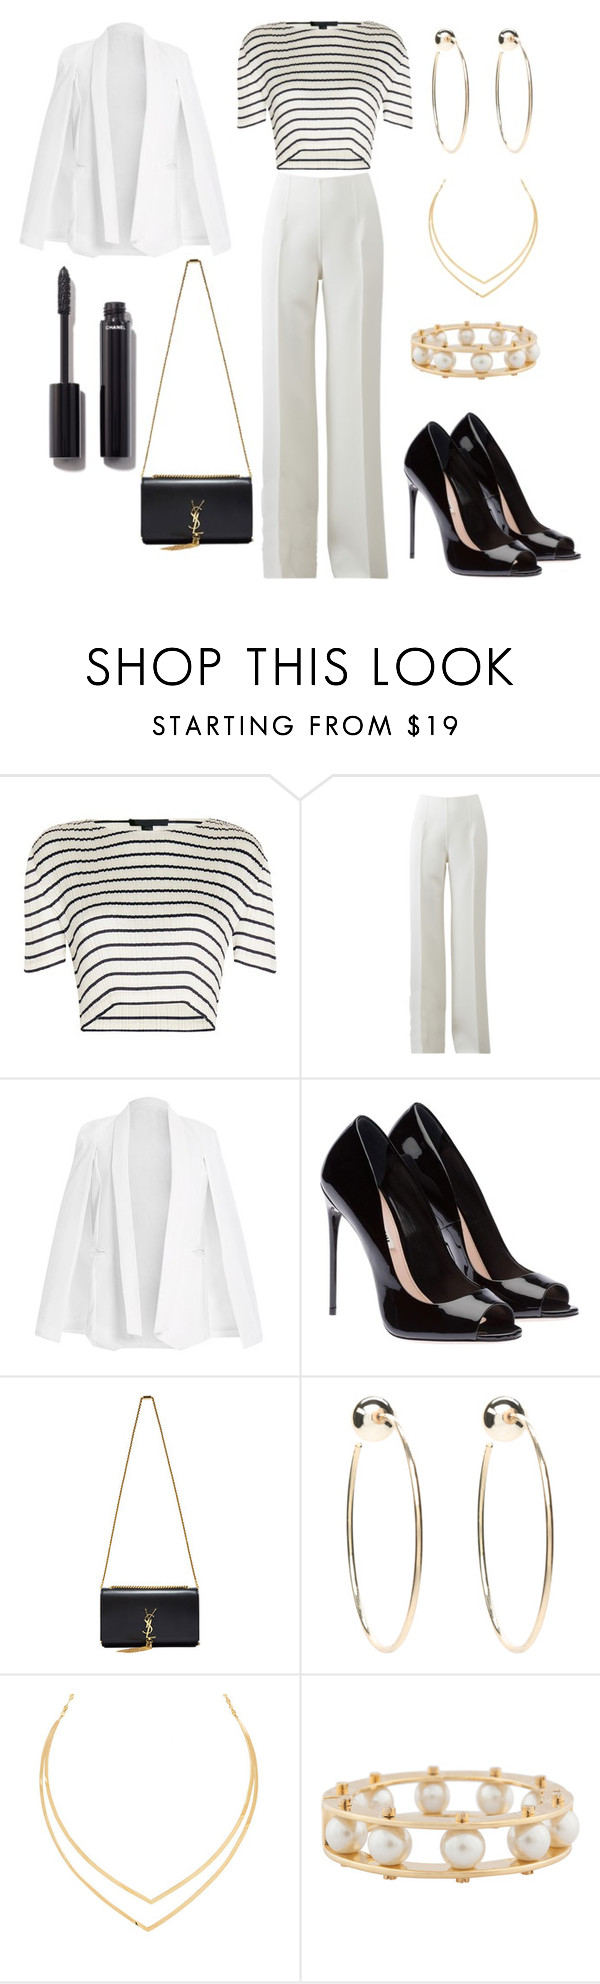 """Untitled #16"" by marymachabeli on Polyvore featuring Alexander Wang, Michael Kors, Yves Saint Laurent, Bebe, Lana, Lele Sadoughi and Chanel"